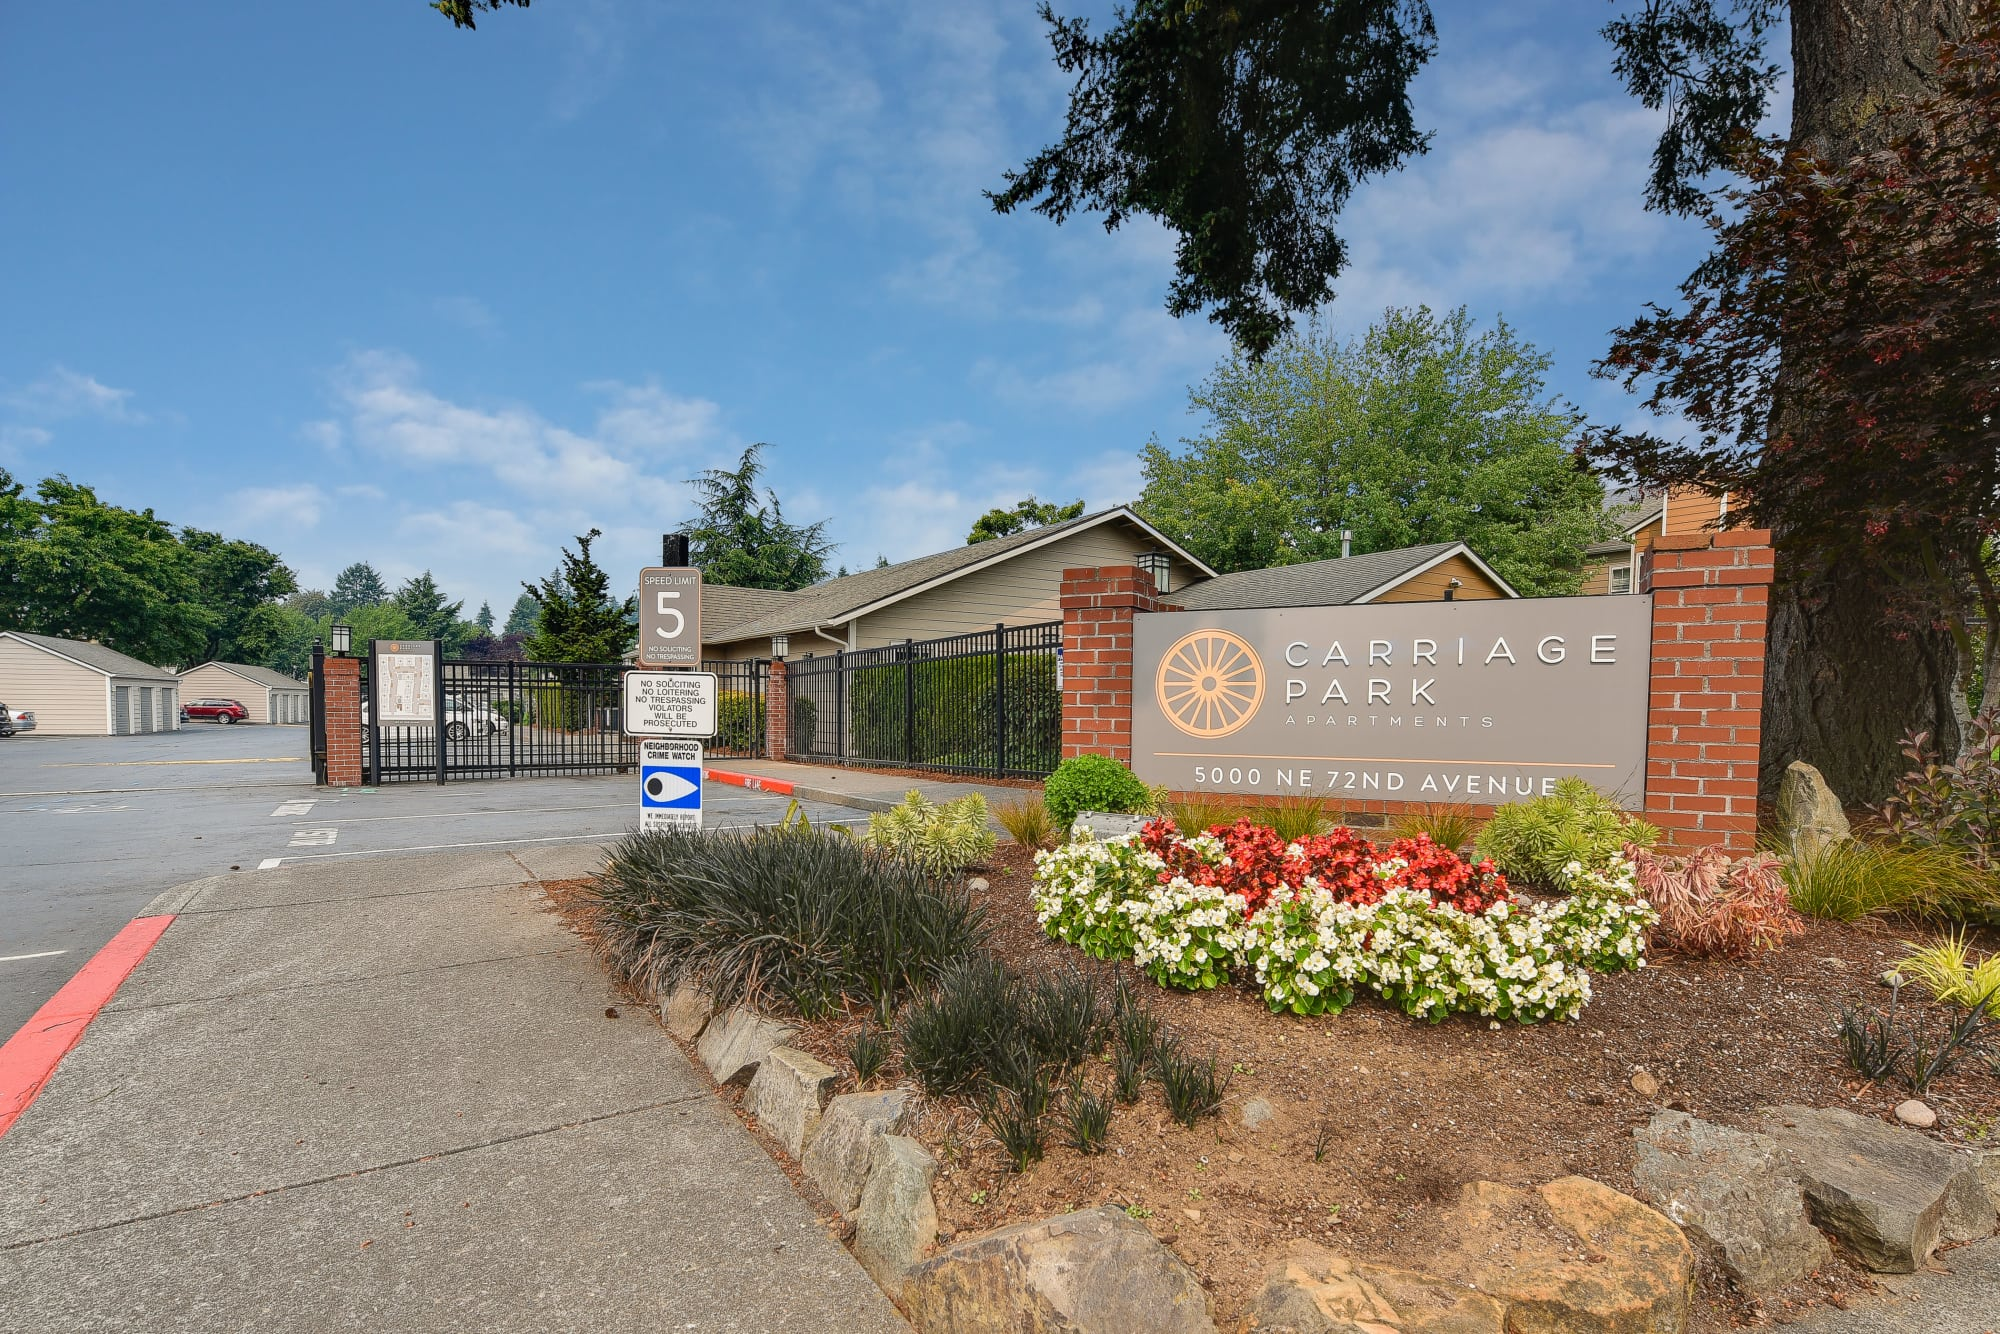 The front monument sign at Carriage Park Apartments in Vancouver, Washington